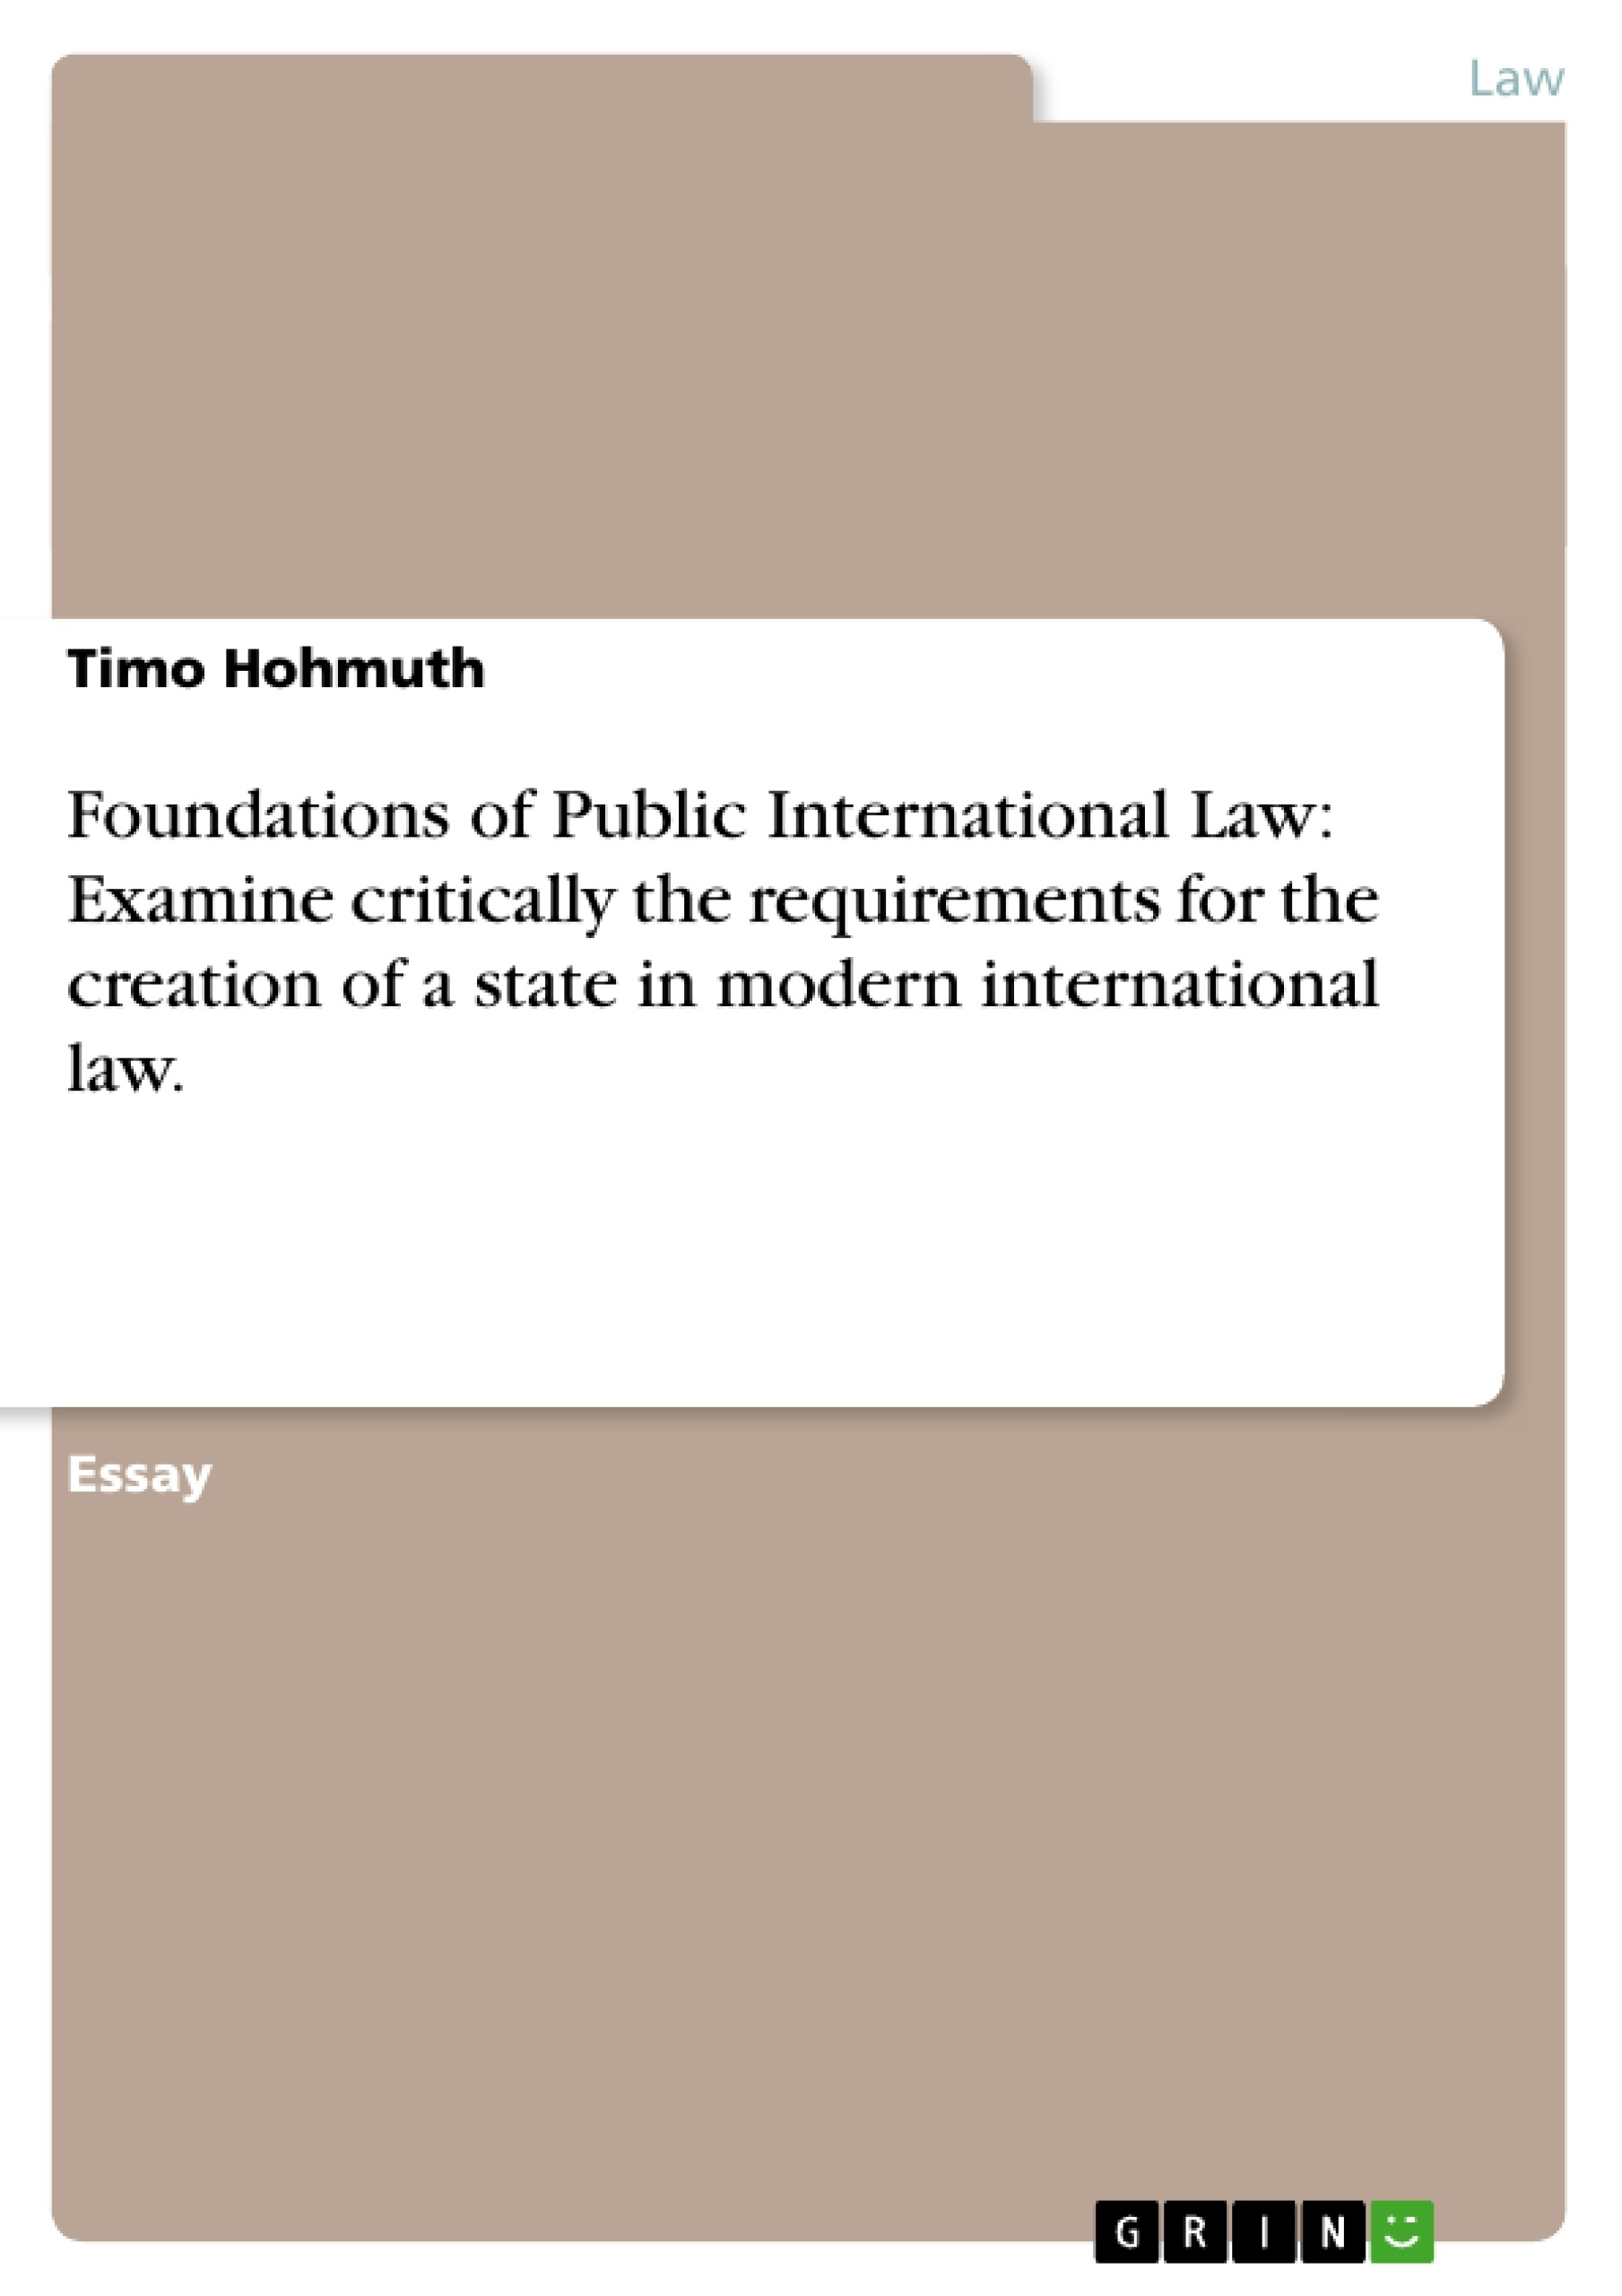 Title: Foundations of Public International Law: Examine critically the requirements for the creation of a state in modern international law.